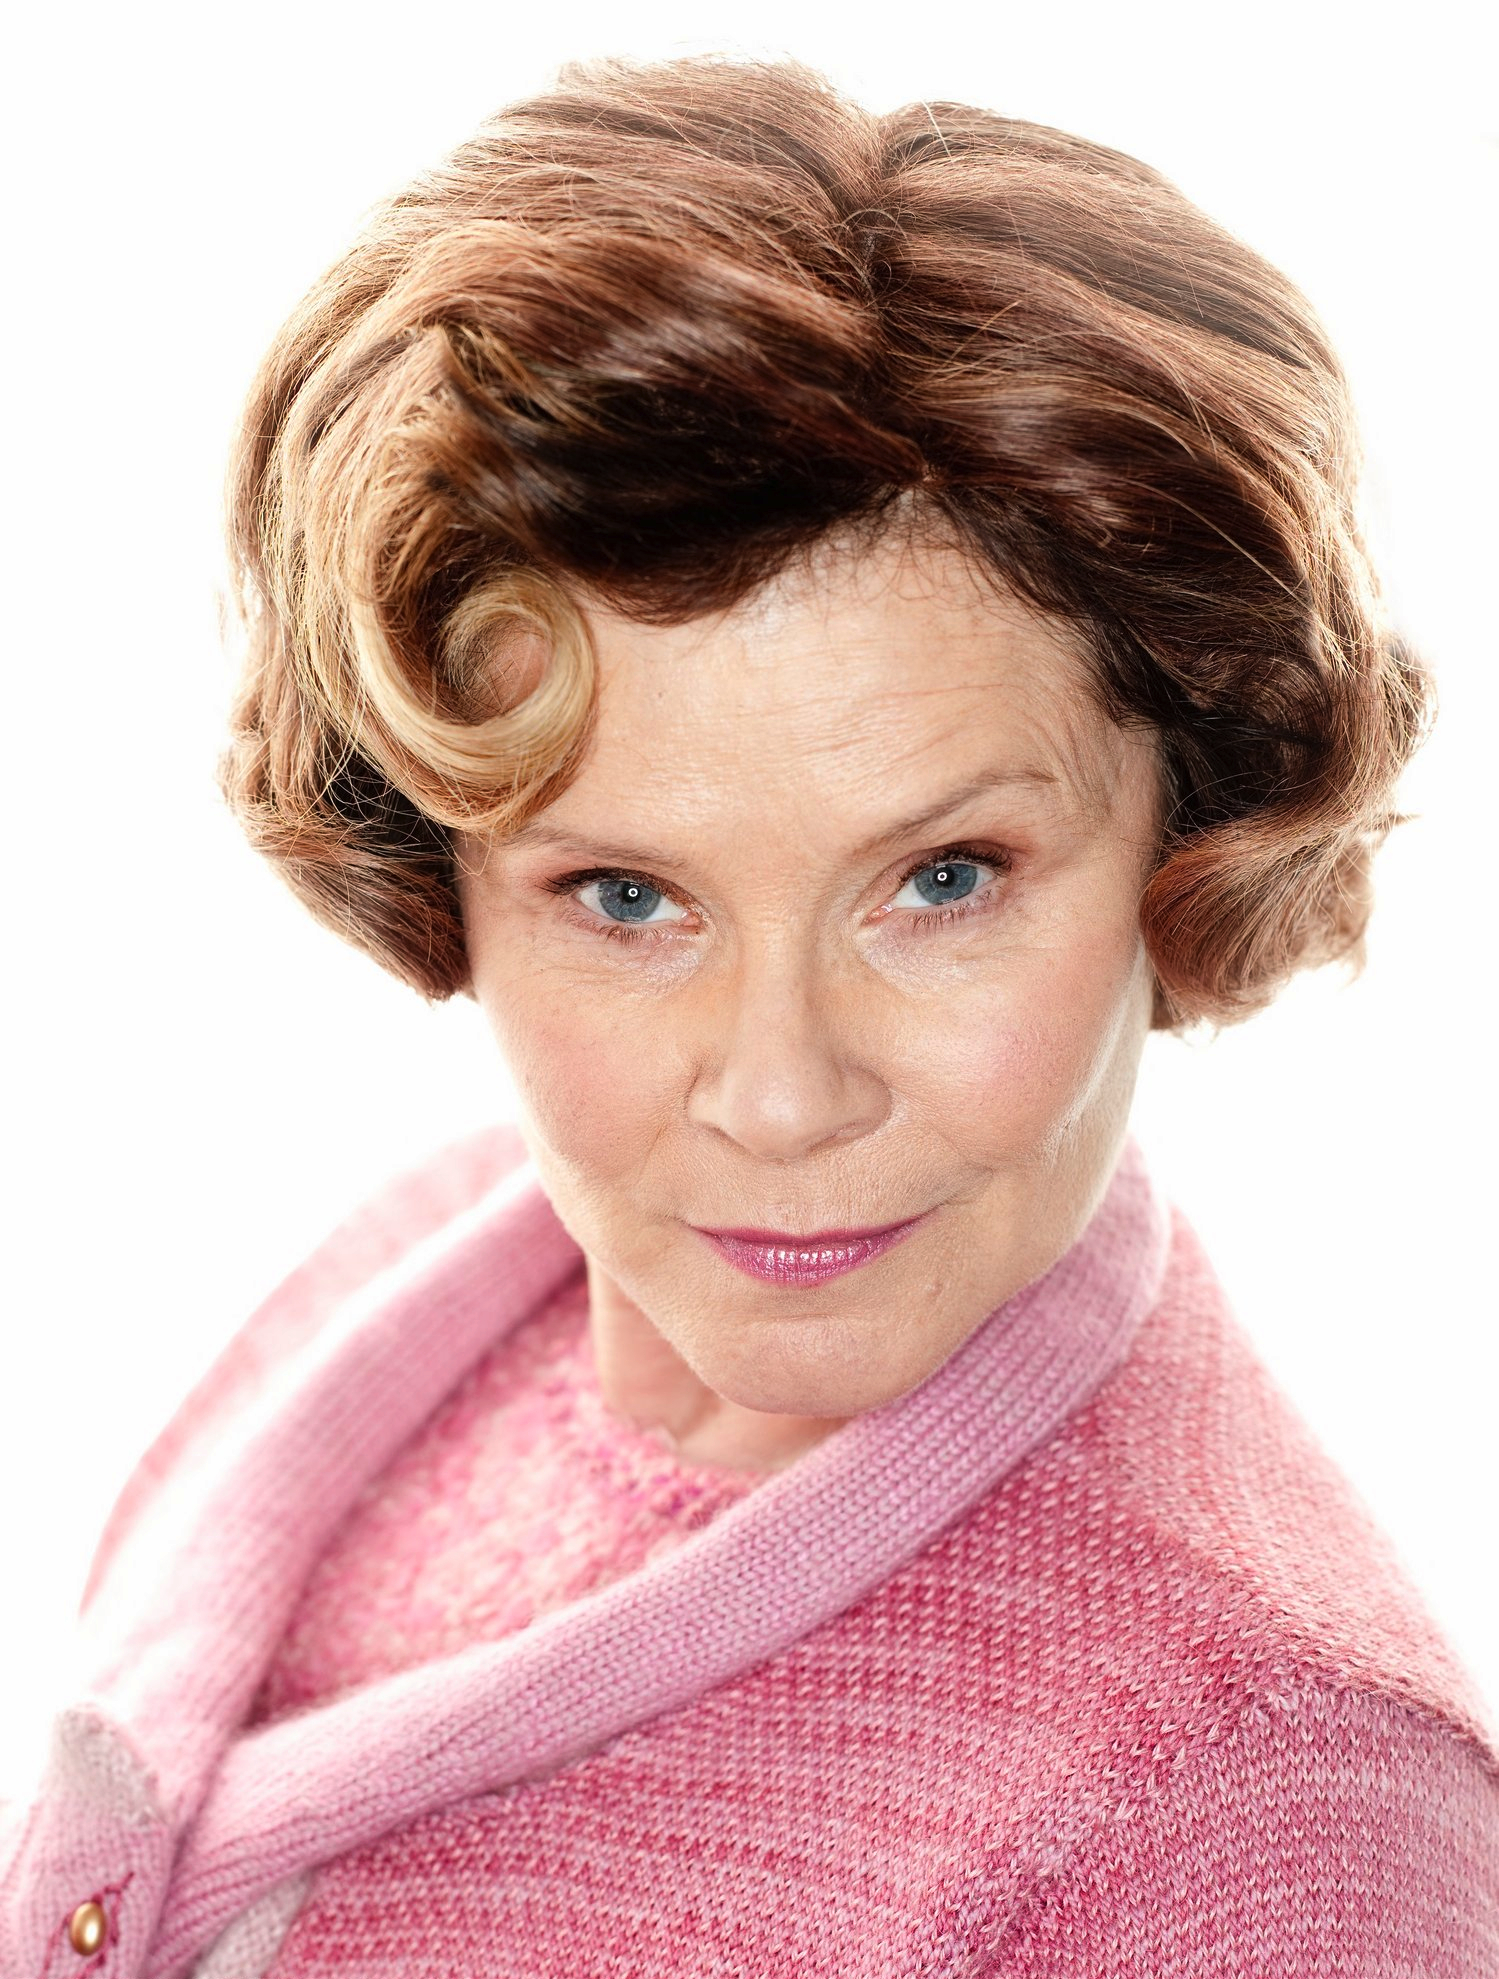 Datei:Dolores Umbridge Deathly Hallows promotional image.jpg